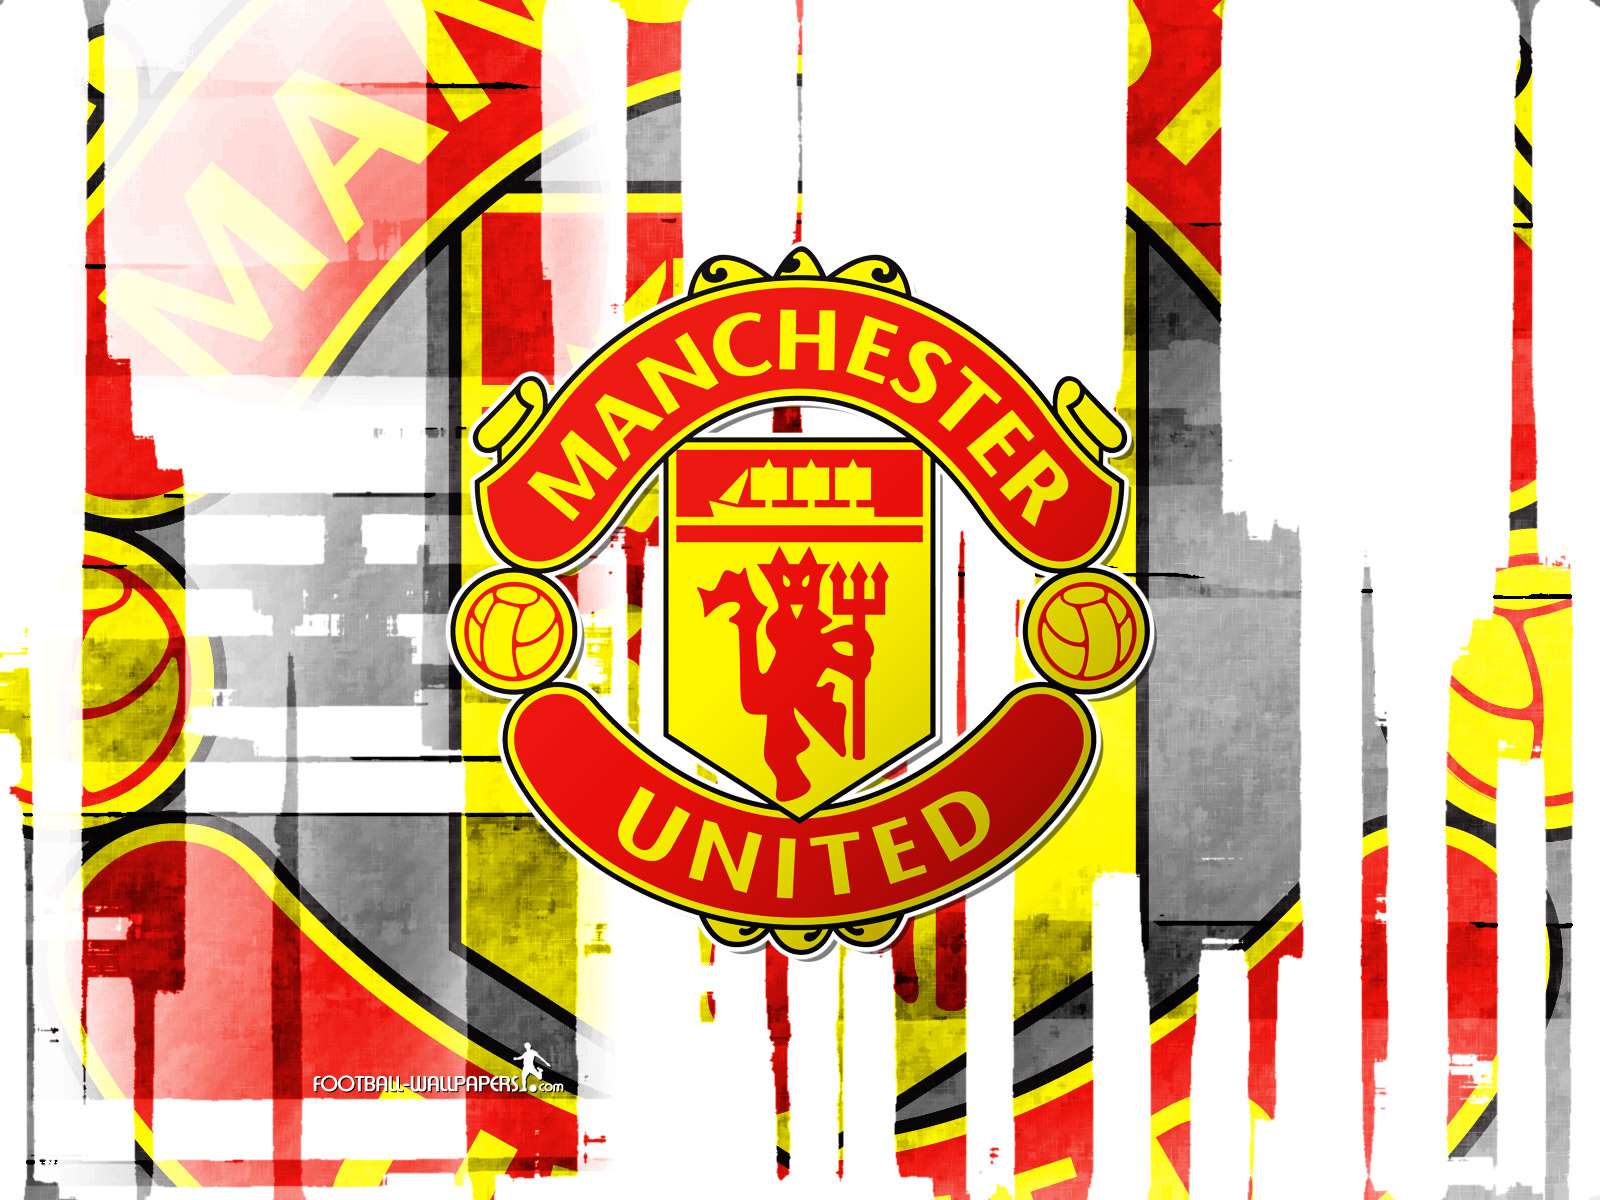 Fiona Apple: All Manchester United Logos